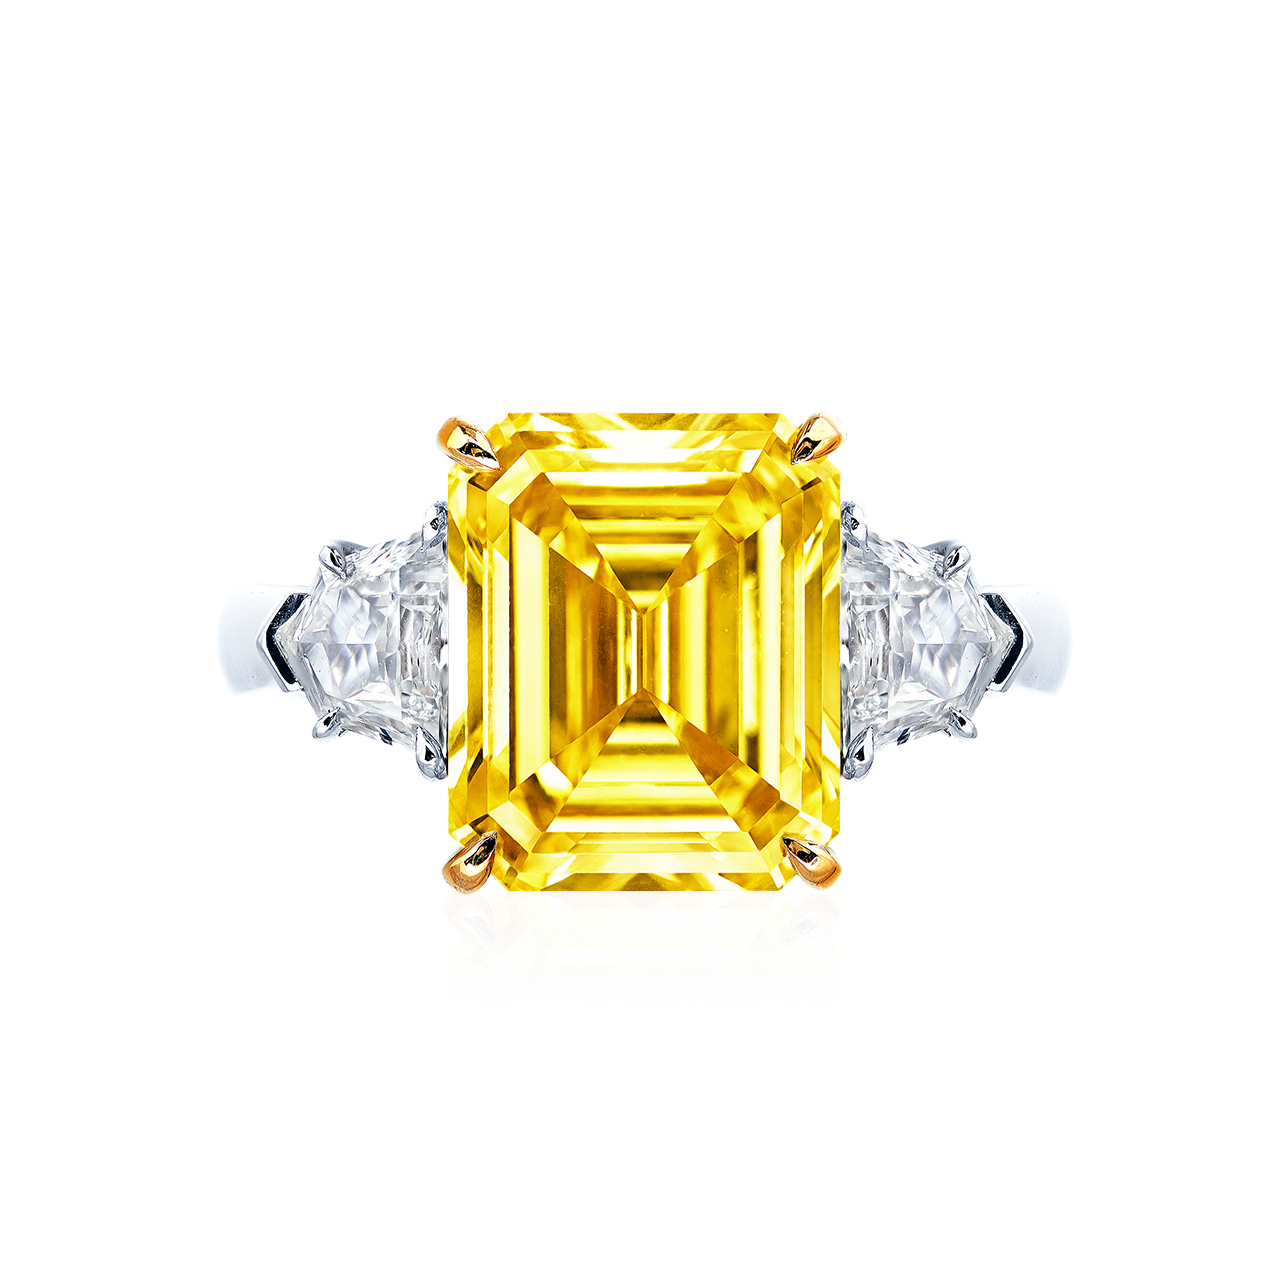 GIA 5.07克拉 艷彩黃鑽鑽戒